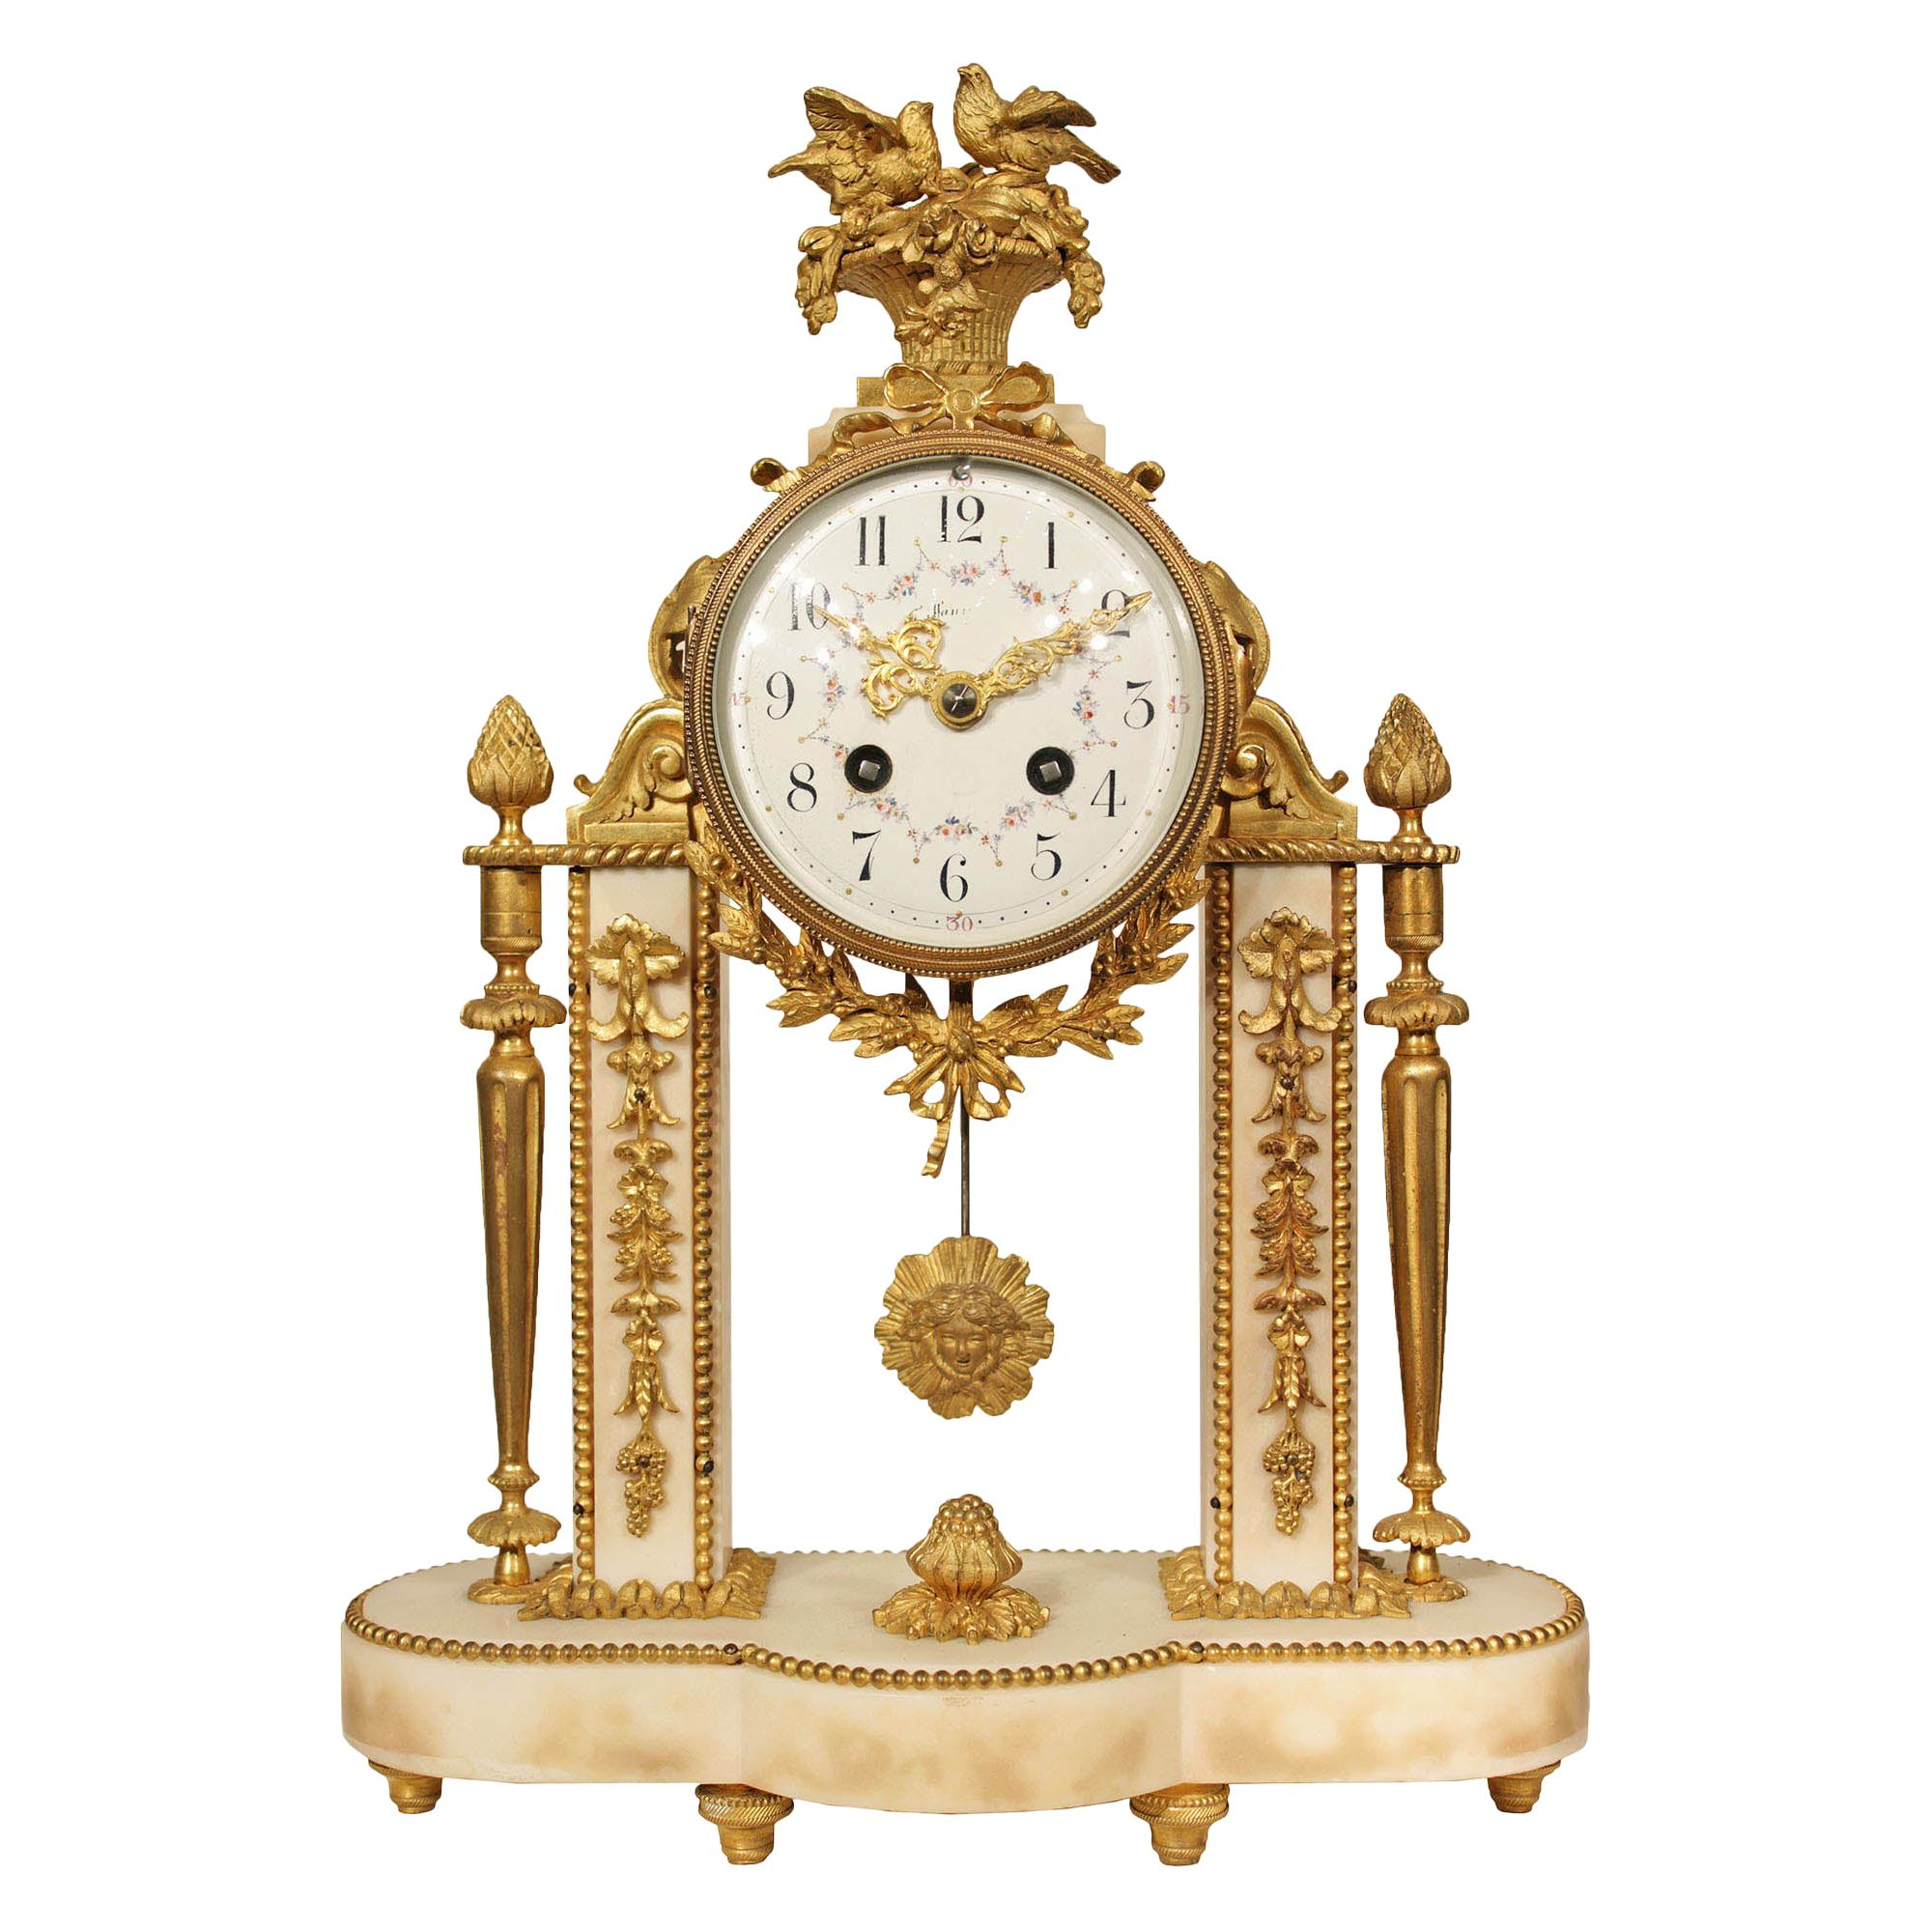 French 19th Century Louis XVI Style Marble and Ormolu Portique Clock